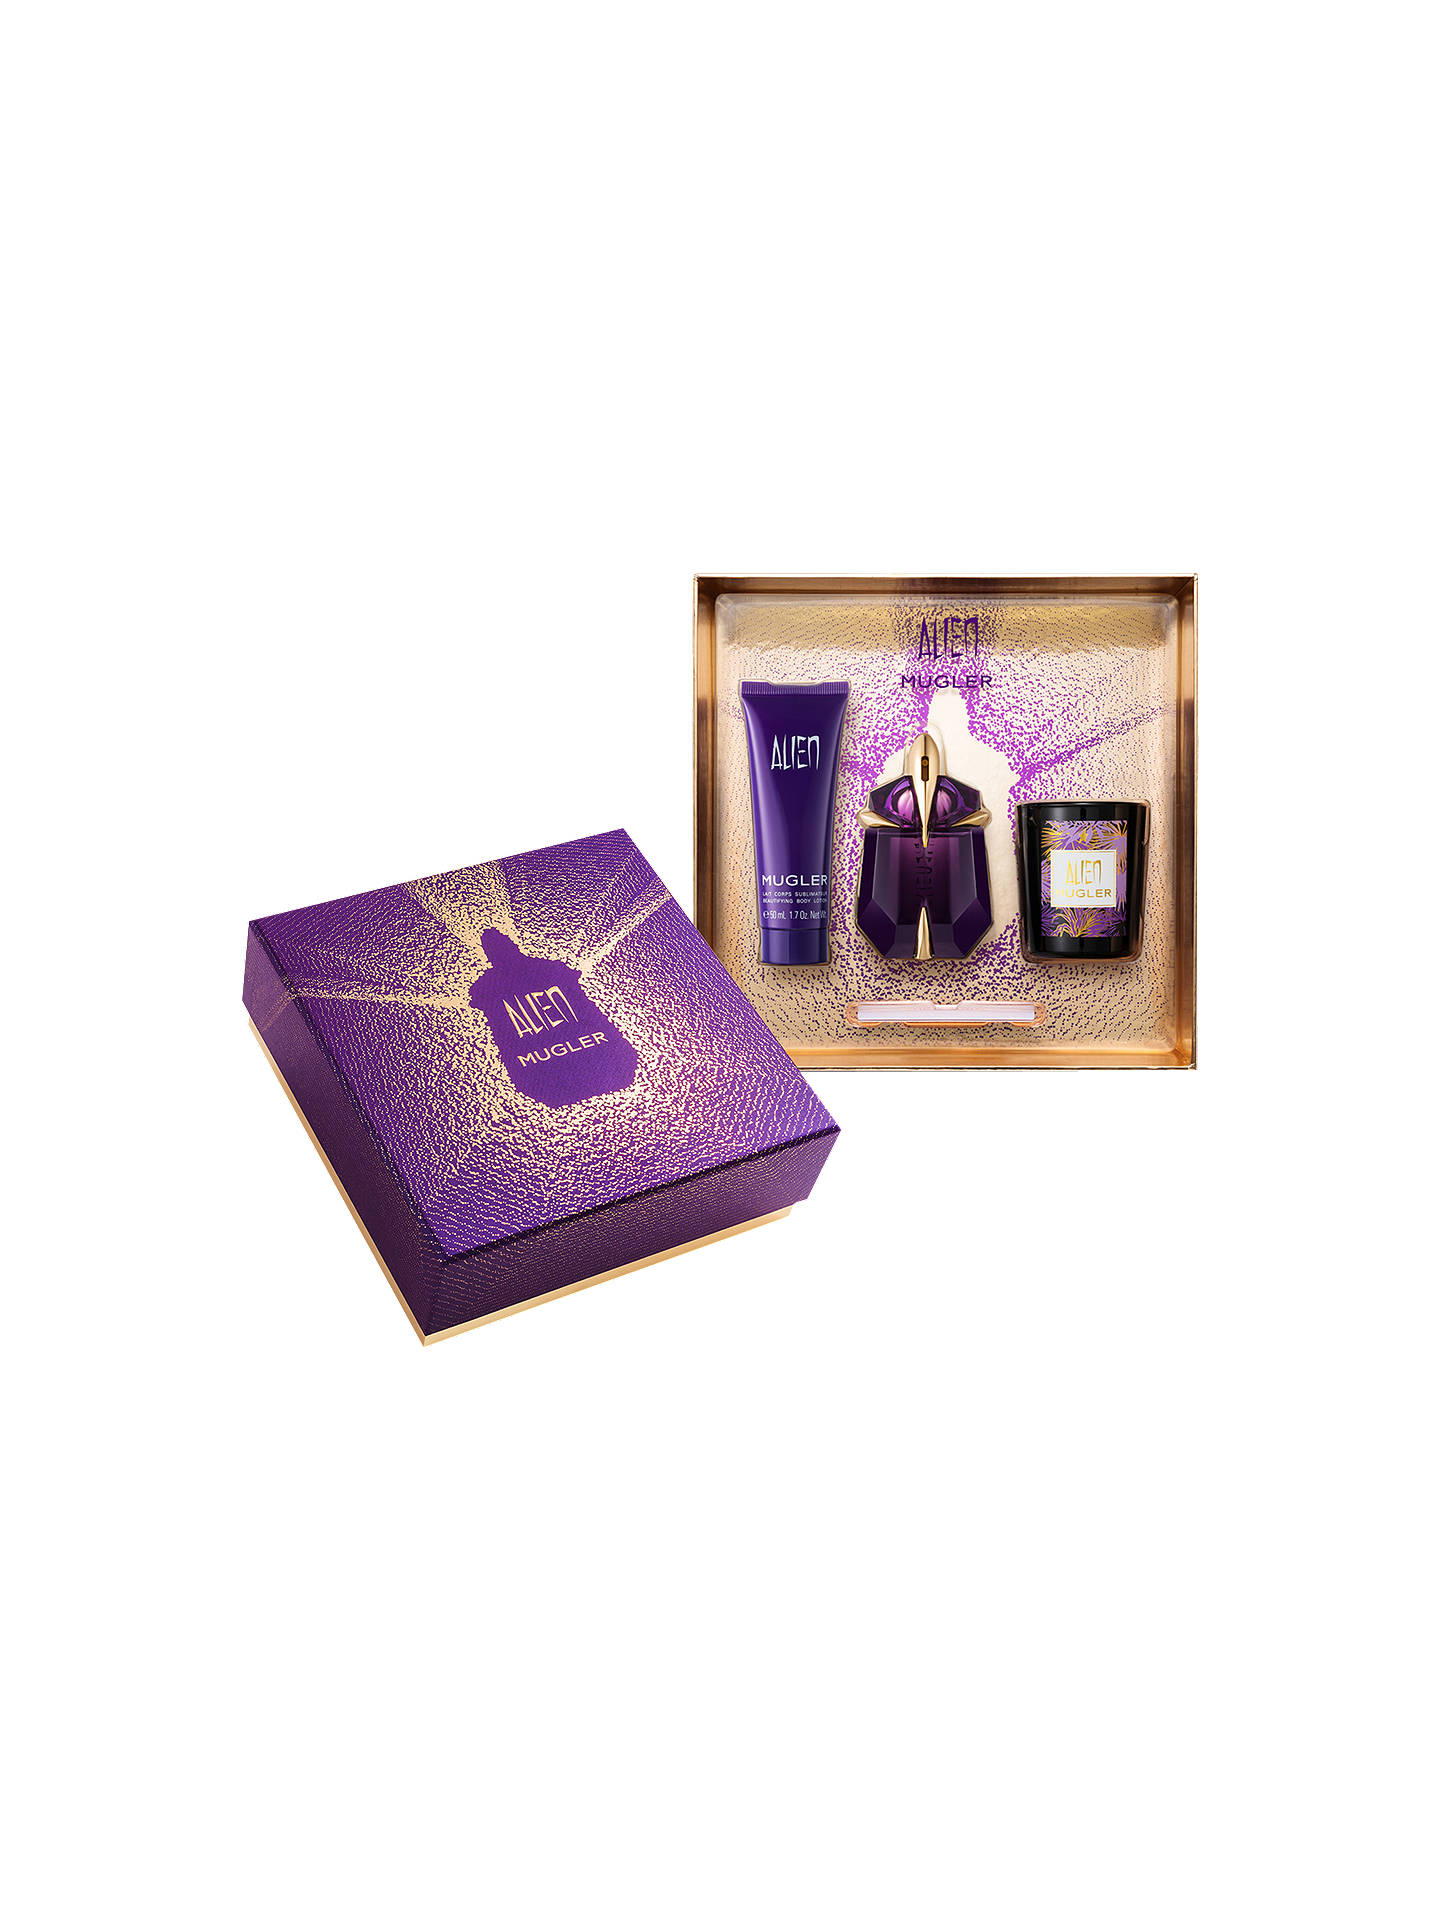 Mugler Alien Eau De Parfum 30ml Fragrance Gift Set At John Lewis